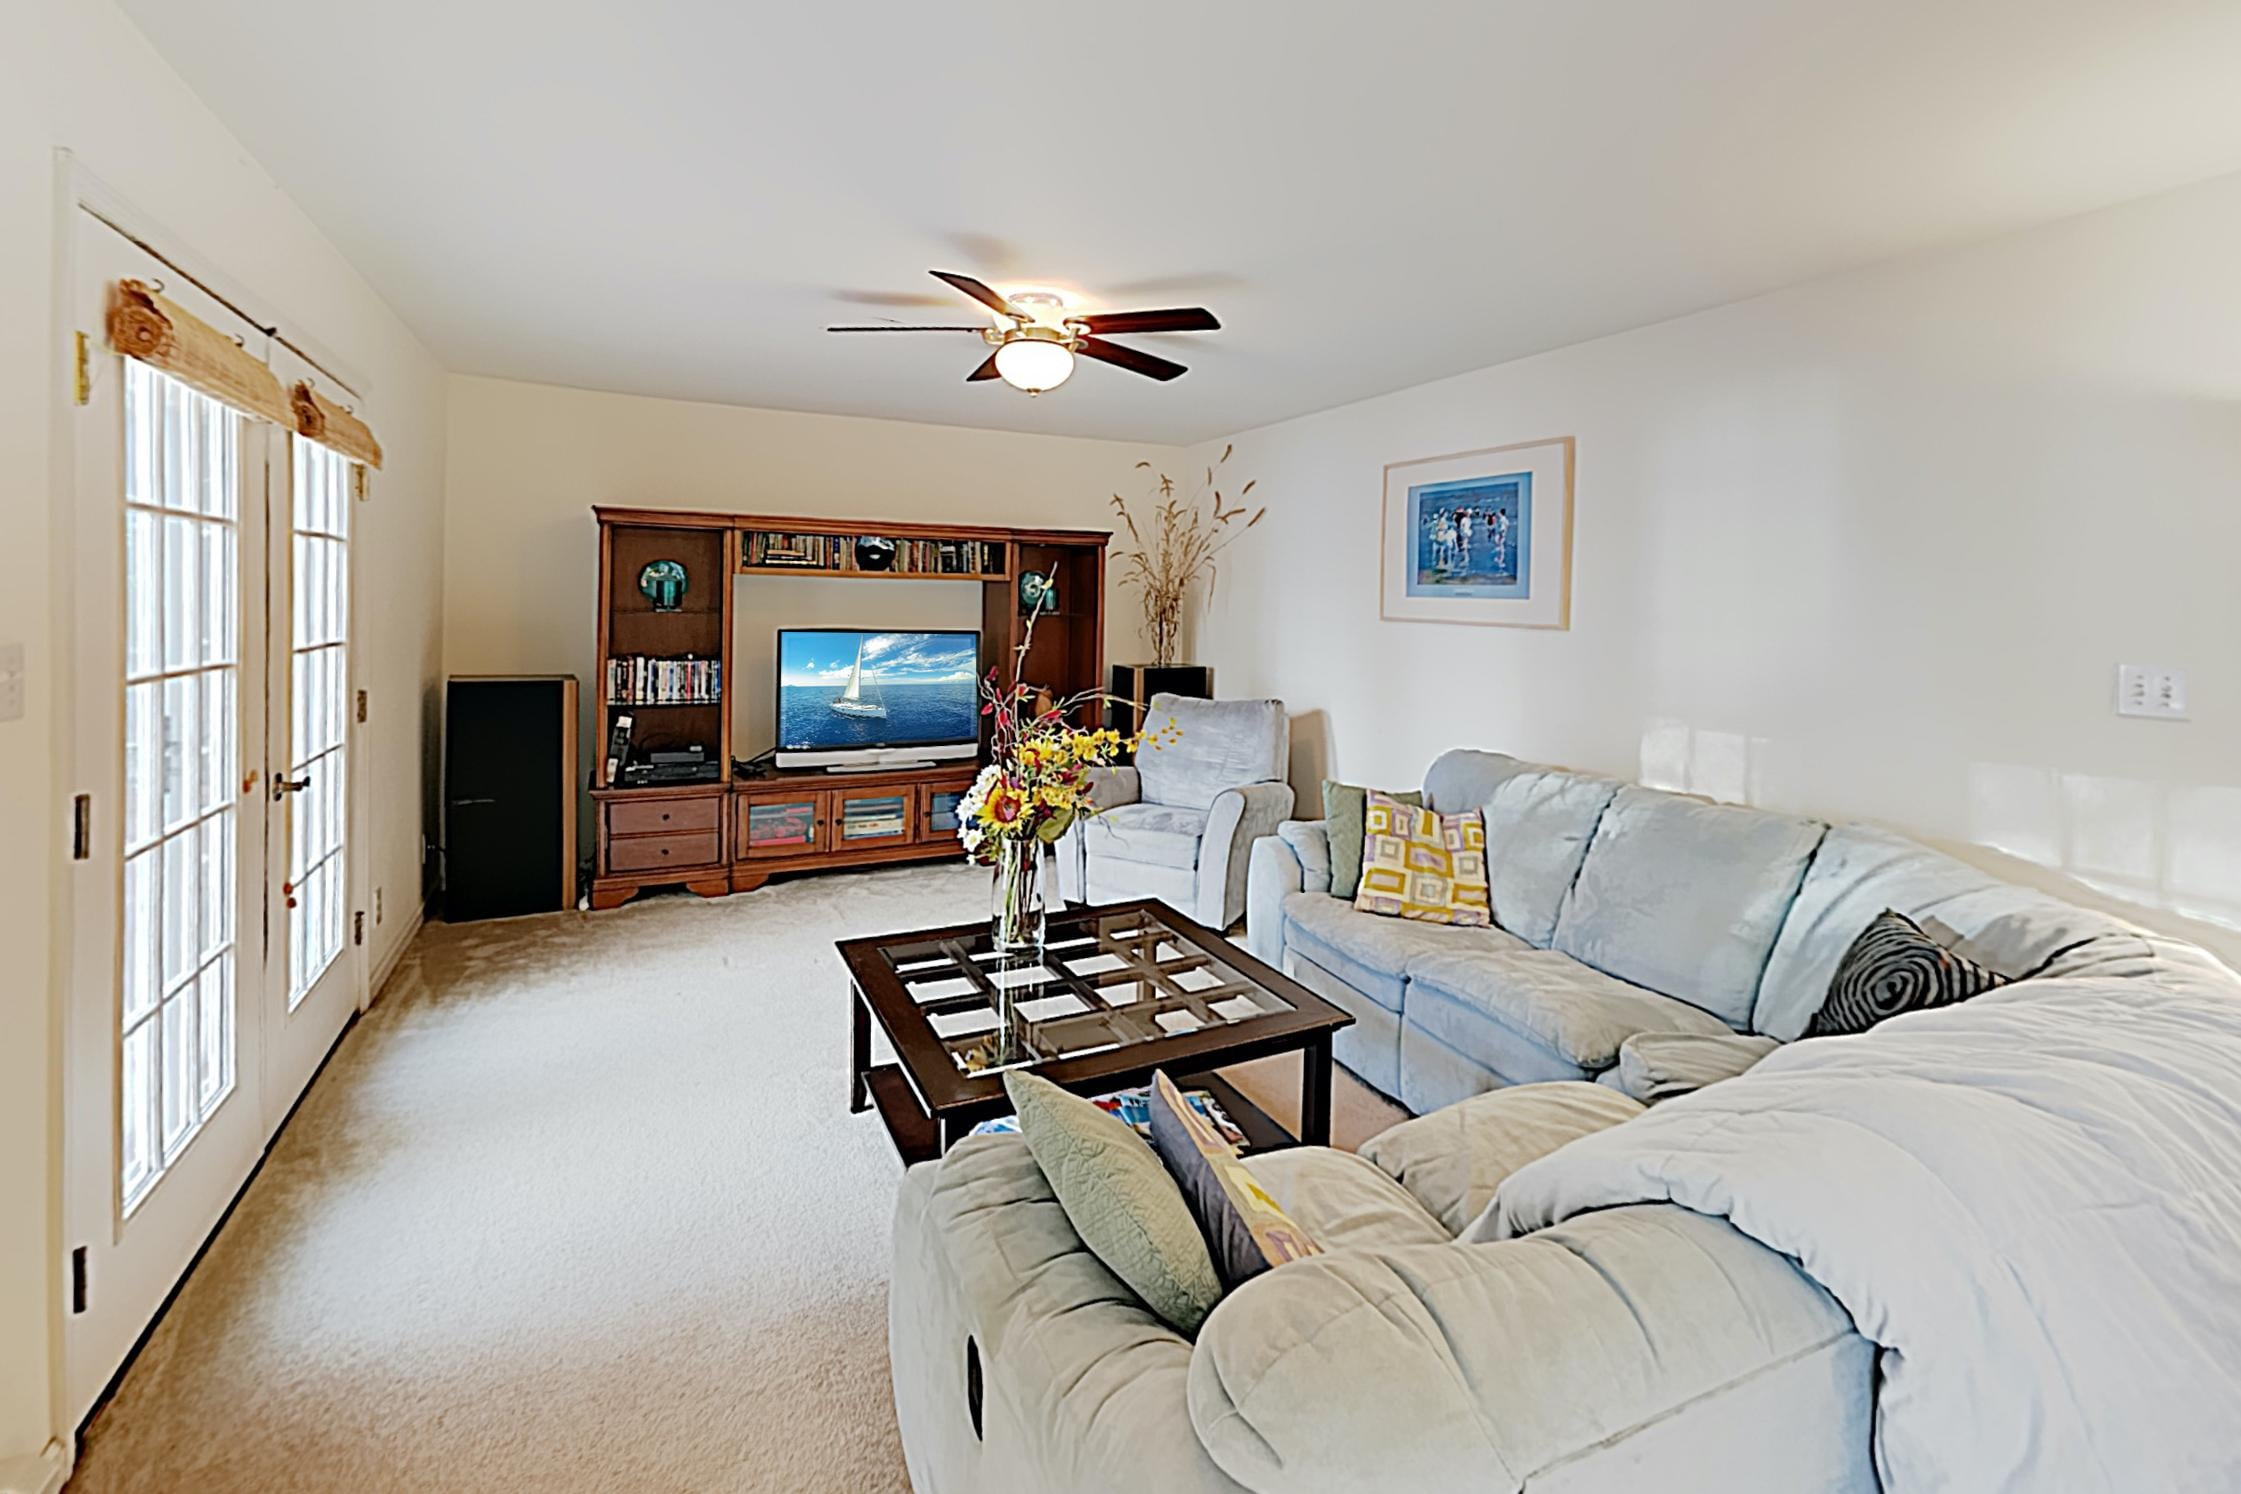 Welcome to Brewster! This house is professionally managed by TurnKey Vacation Rentals.